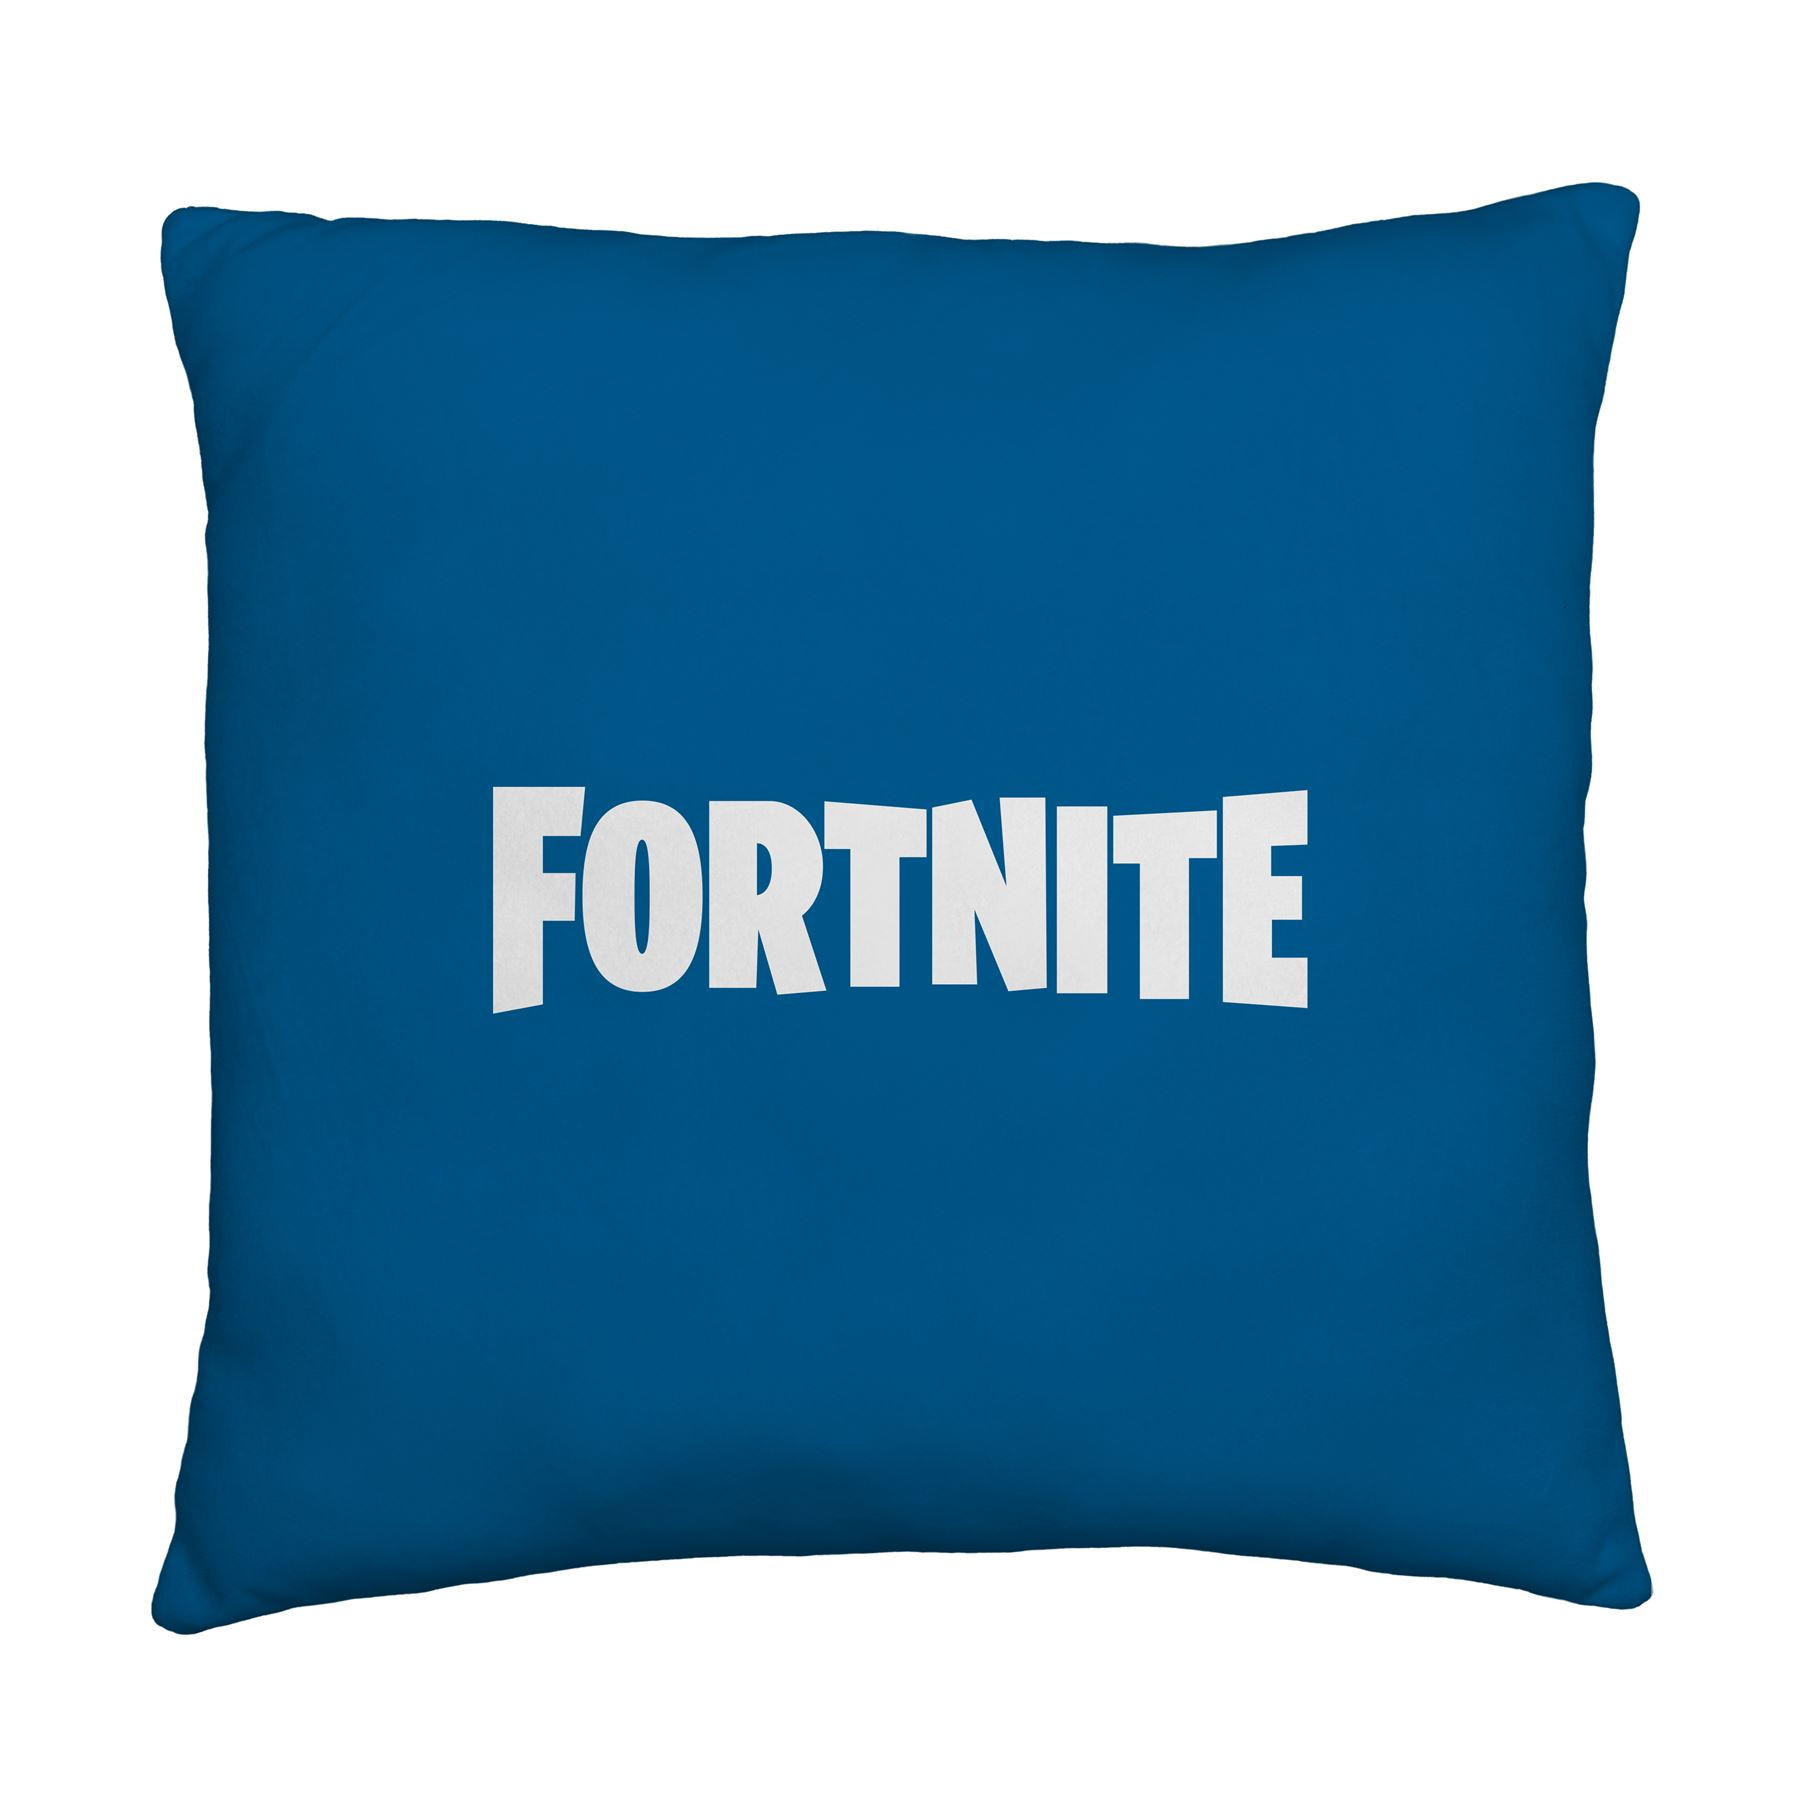 Official-Fortnite-Bomb-Emotes-Llama-Cushion-Matches-Bedding-IN-STOCK thumbnail 6